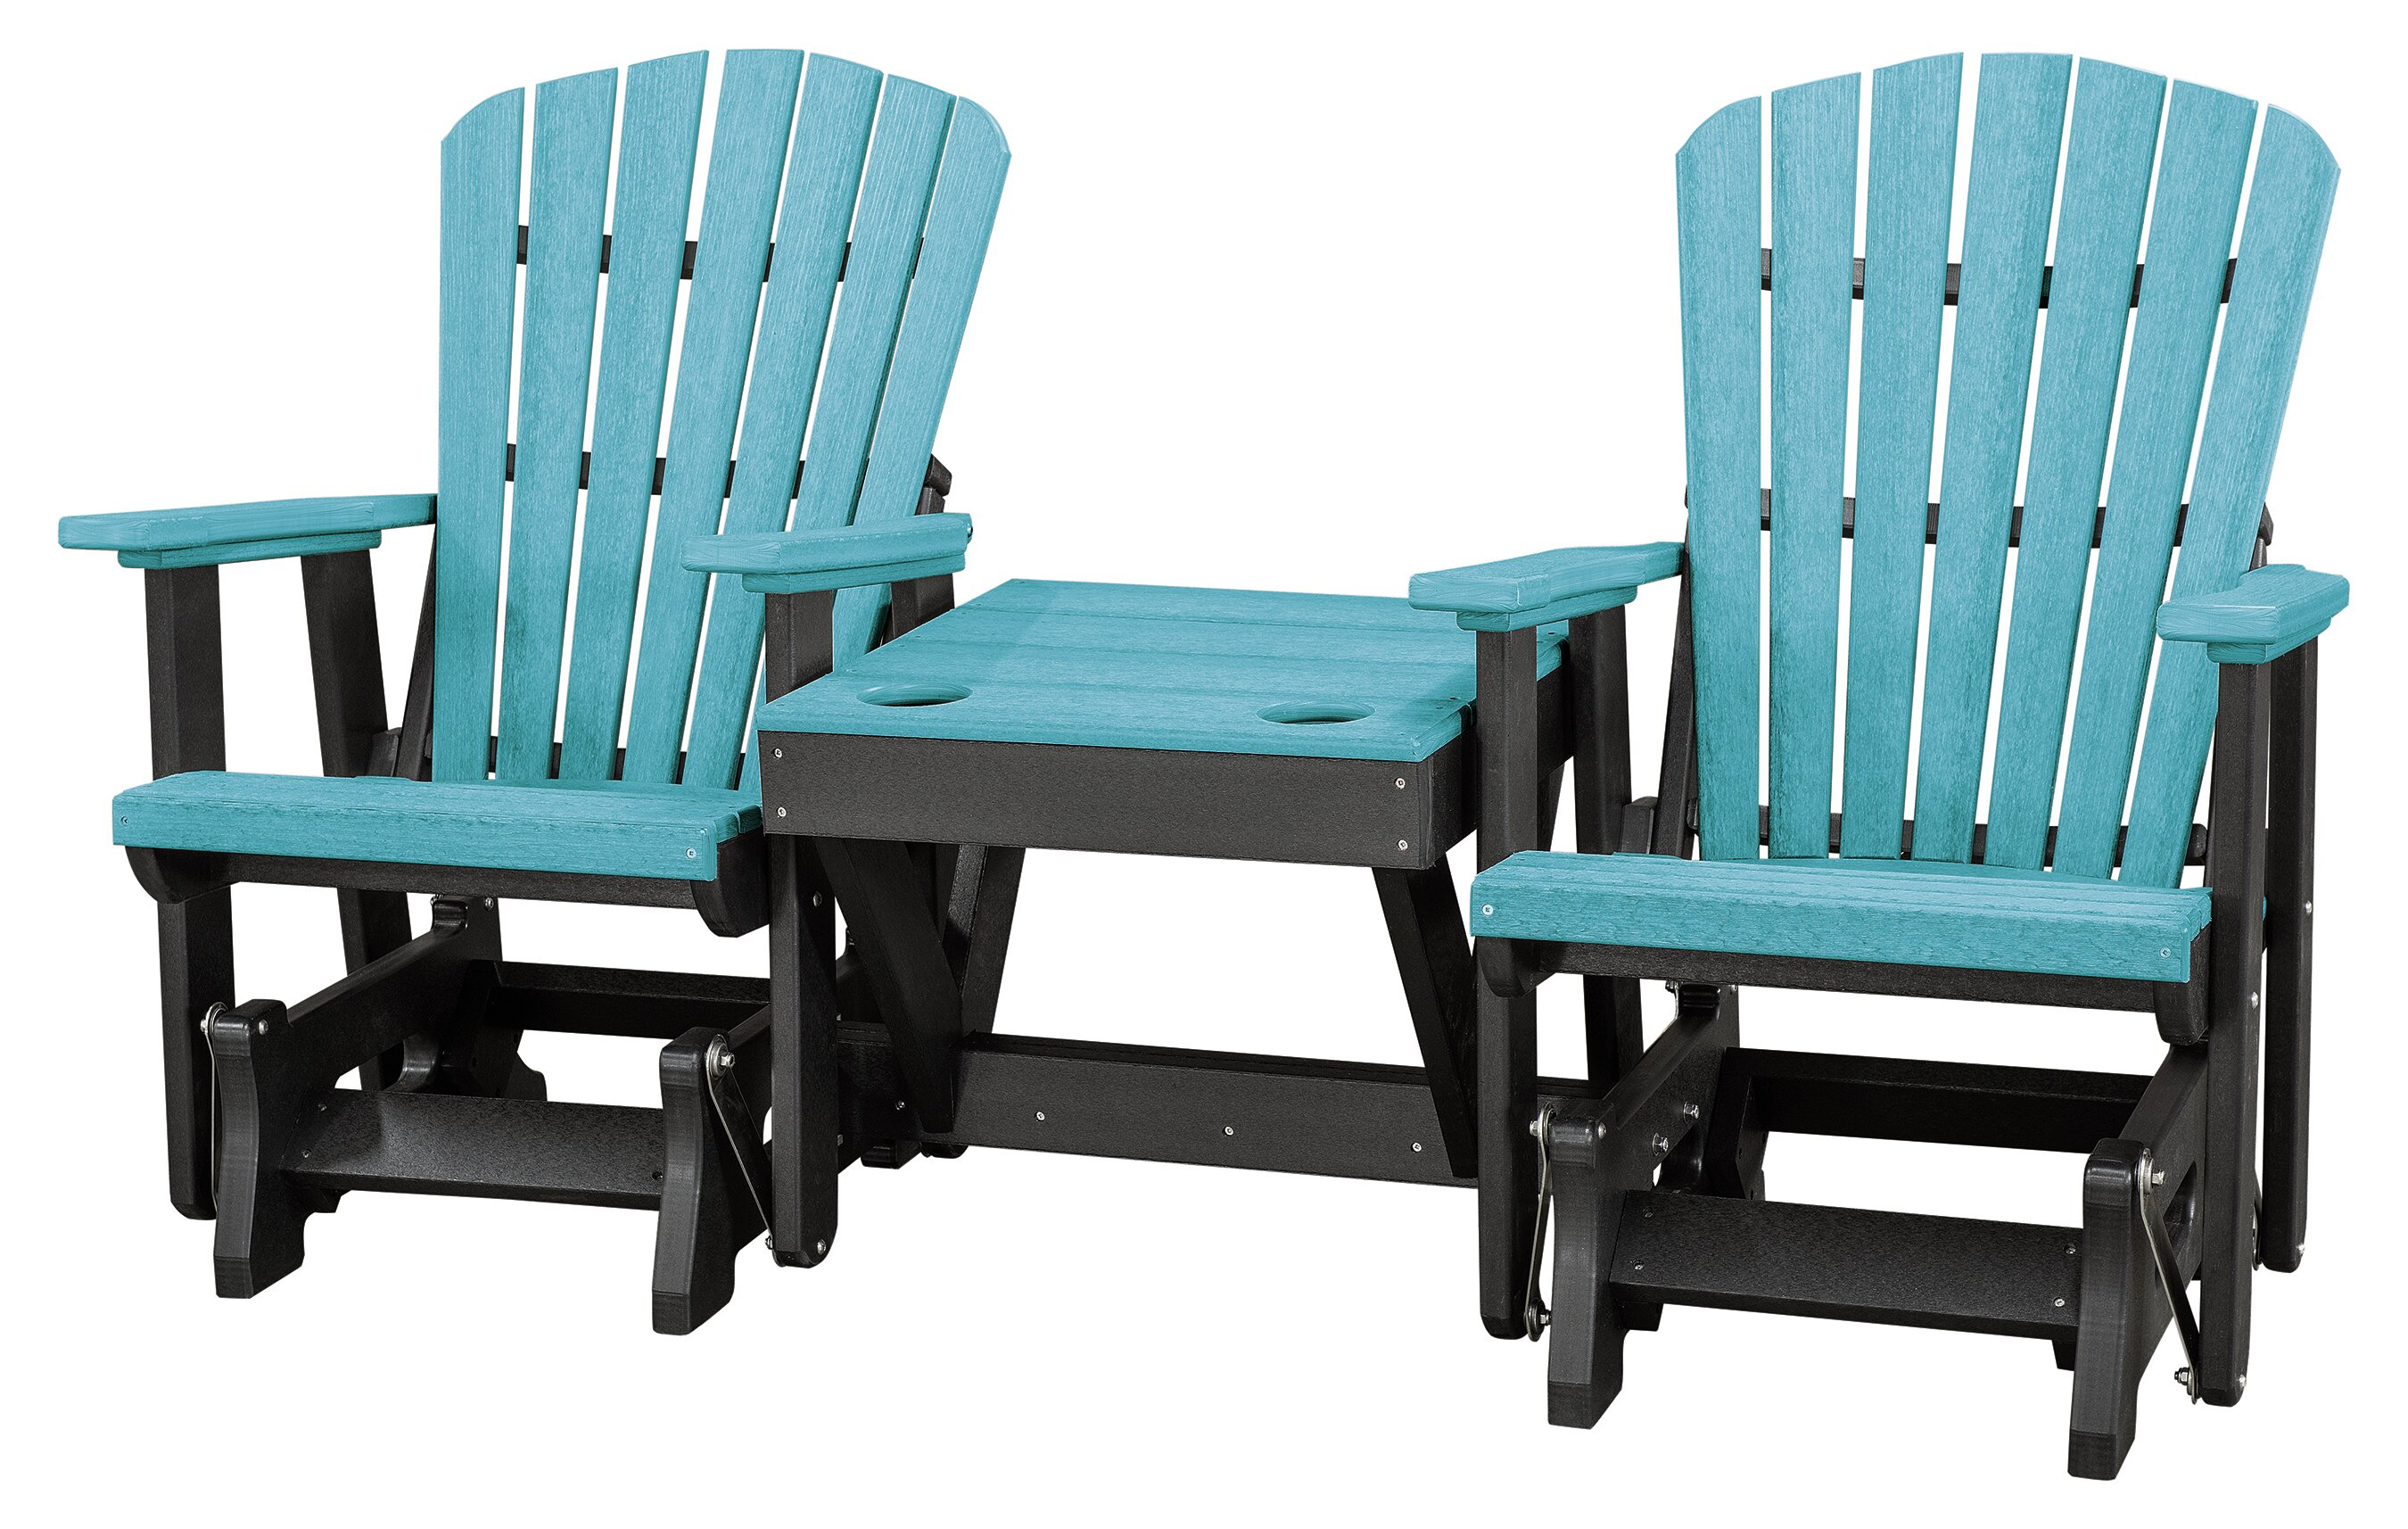 Gina Center Table Double Glider Bench